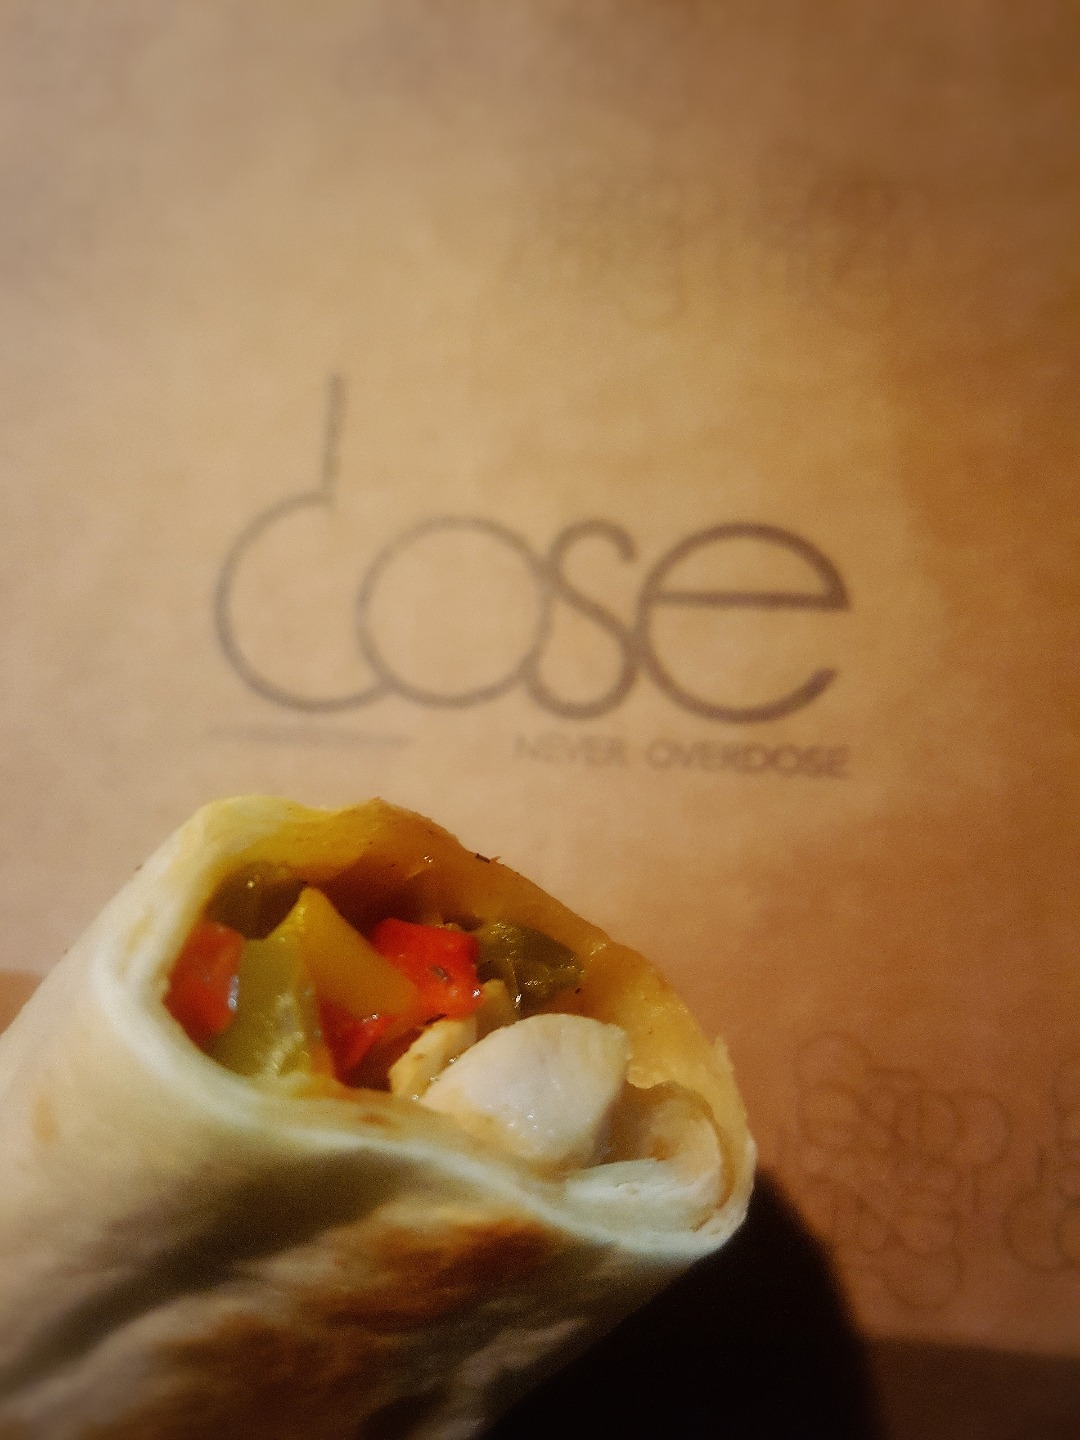 Grilled chicken fajita @ Dose cafe - Bahrain